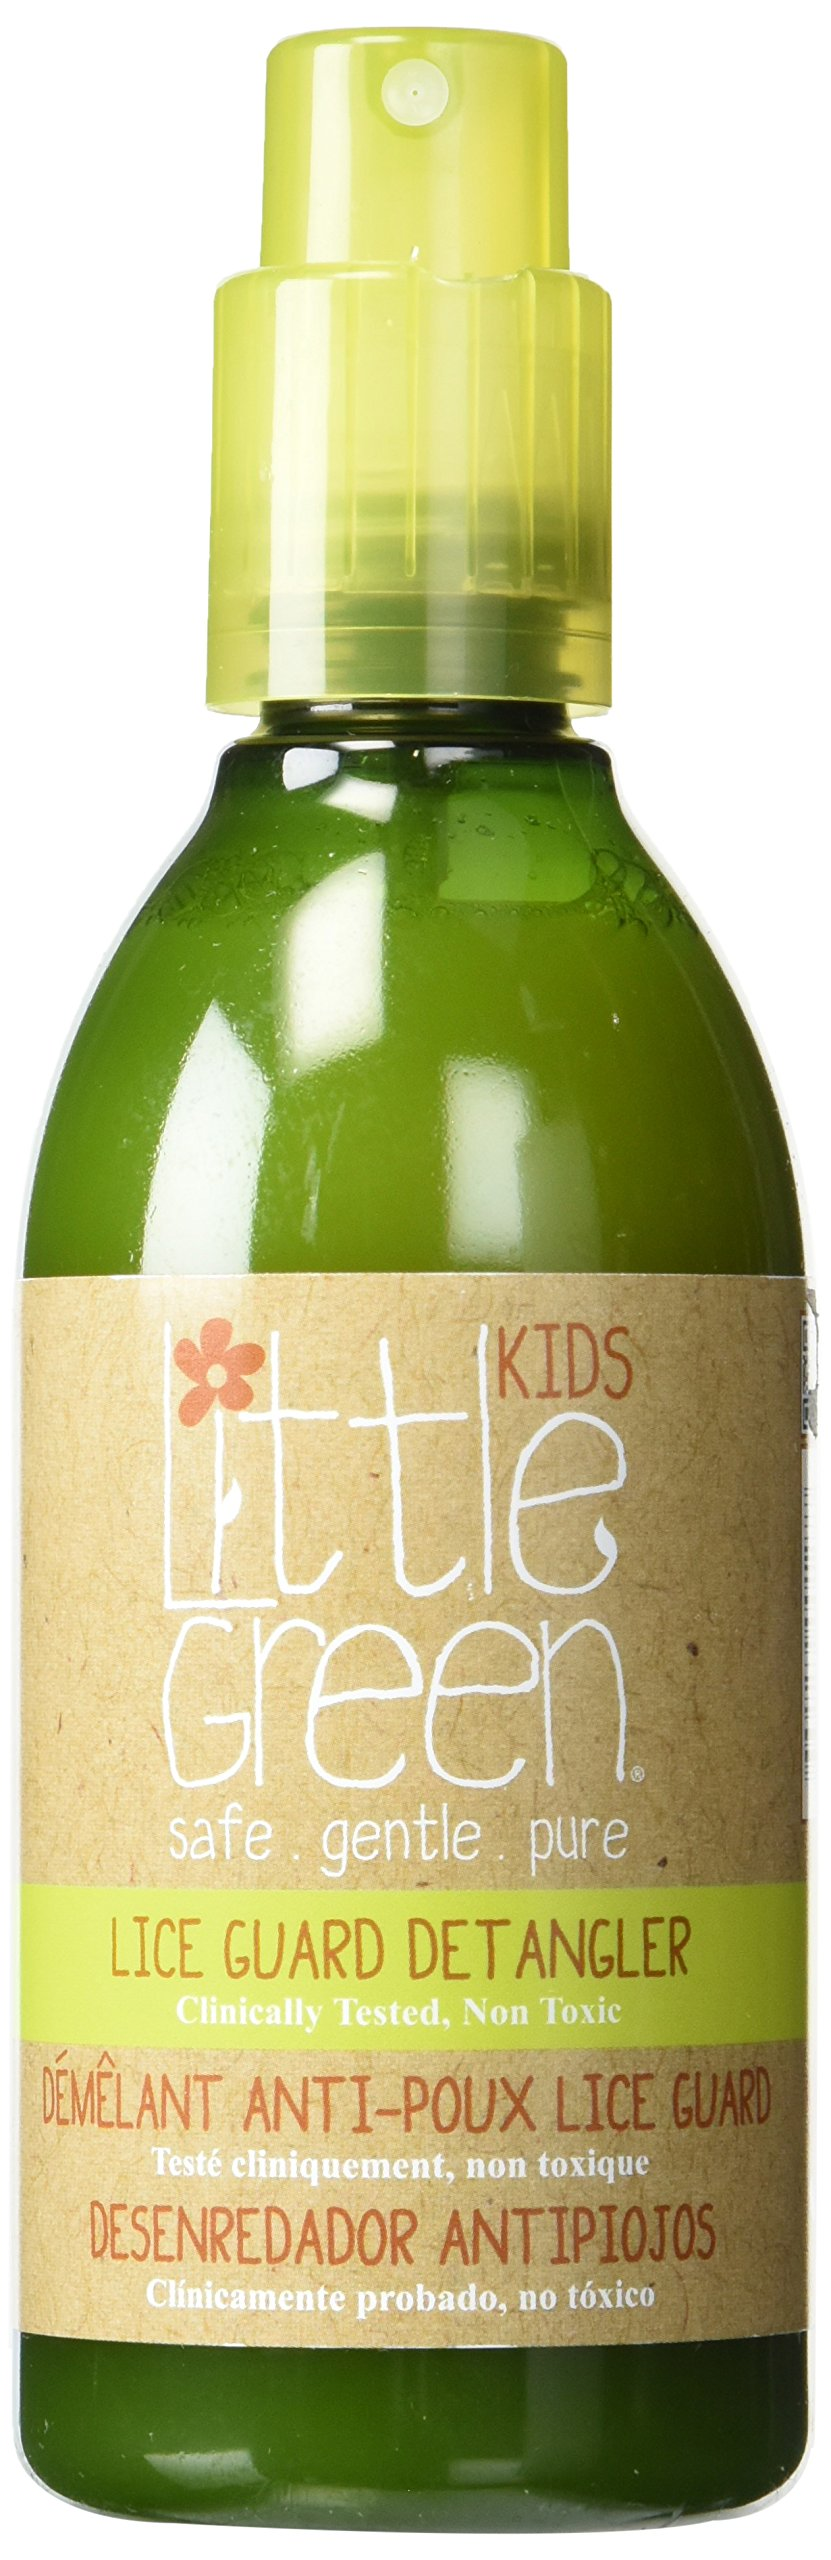 Little Green Lice Guard Detangler Spray – Conditioning Lice Treatment – Safe and Non-Toxic for Kids – Natural Lice Repellant – Remove Tangles from Hair – Repels Lice Naturally – Essential Oil Blend